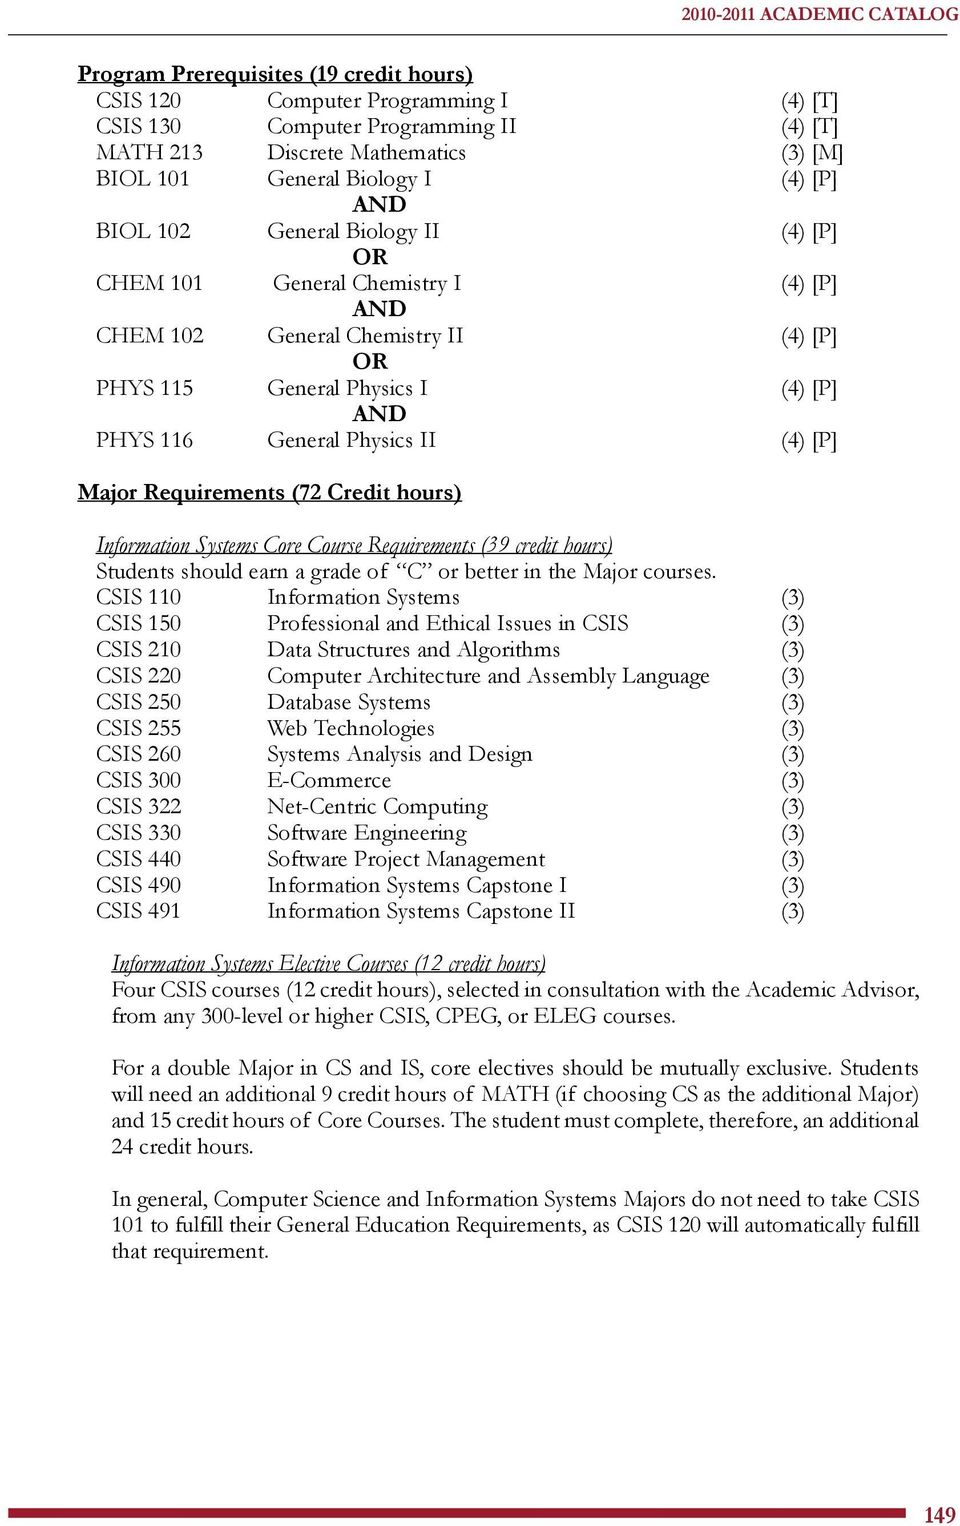 General Physics II (4) [P] Major Requirements (72 Credit hours) Information Systems Core Course Requirements (39 credit hours) Students should earn a grade of C or better in the Major courses.